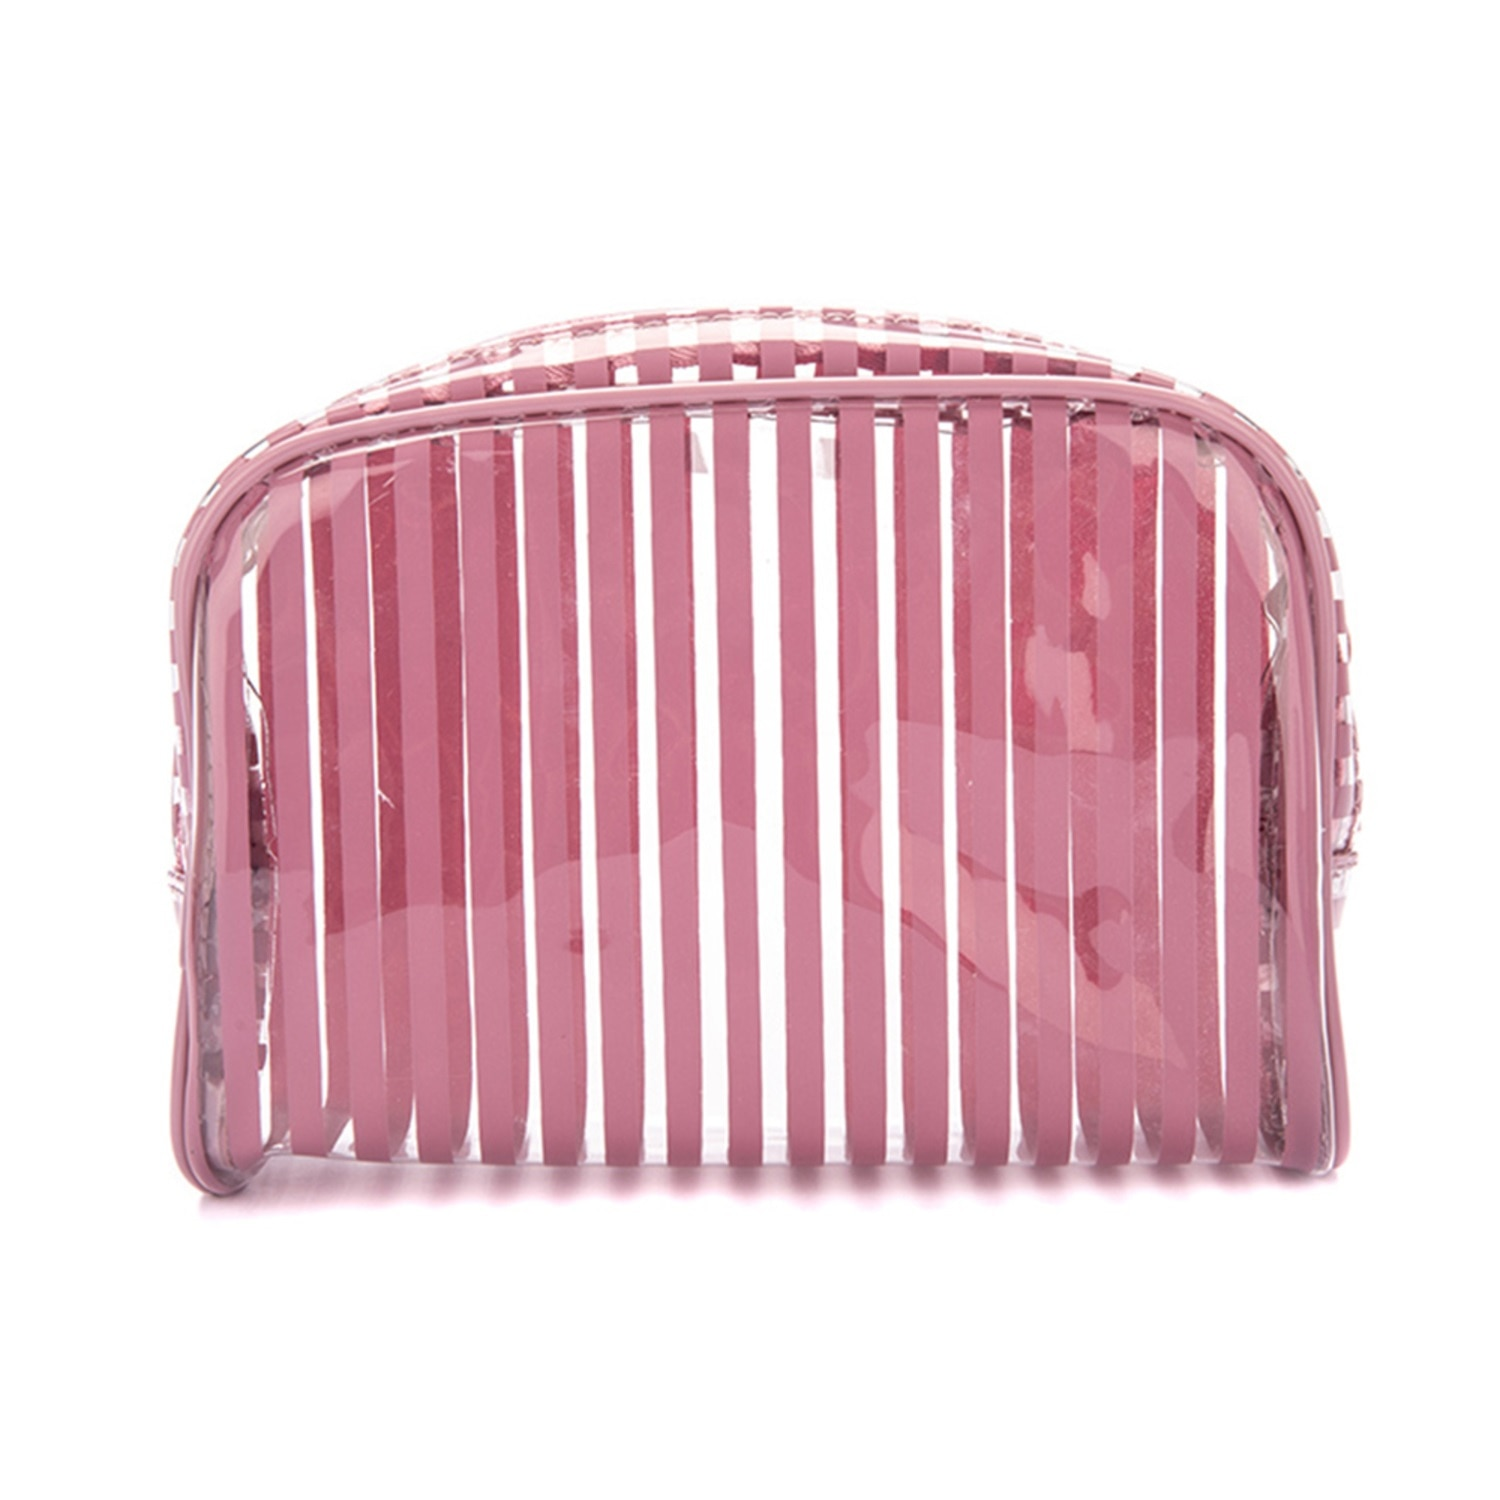 STYLESOURCEStripes Pink Halfmoon Cosmetic Pouch Small,Home EssentialsWATSONS EMP. DISC.